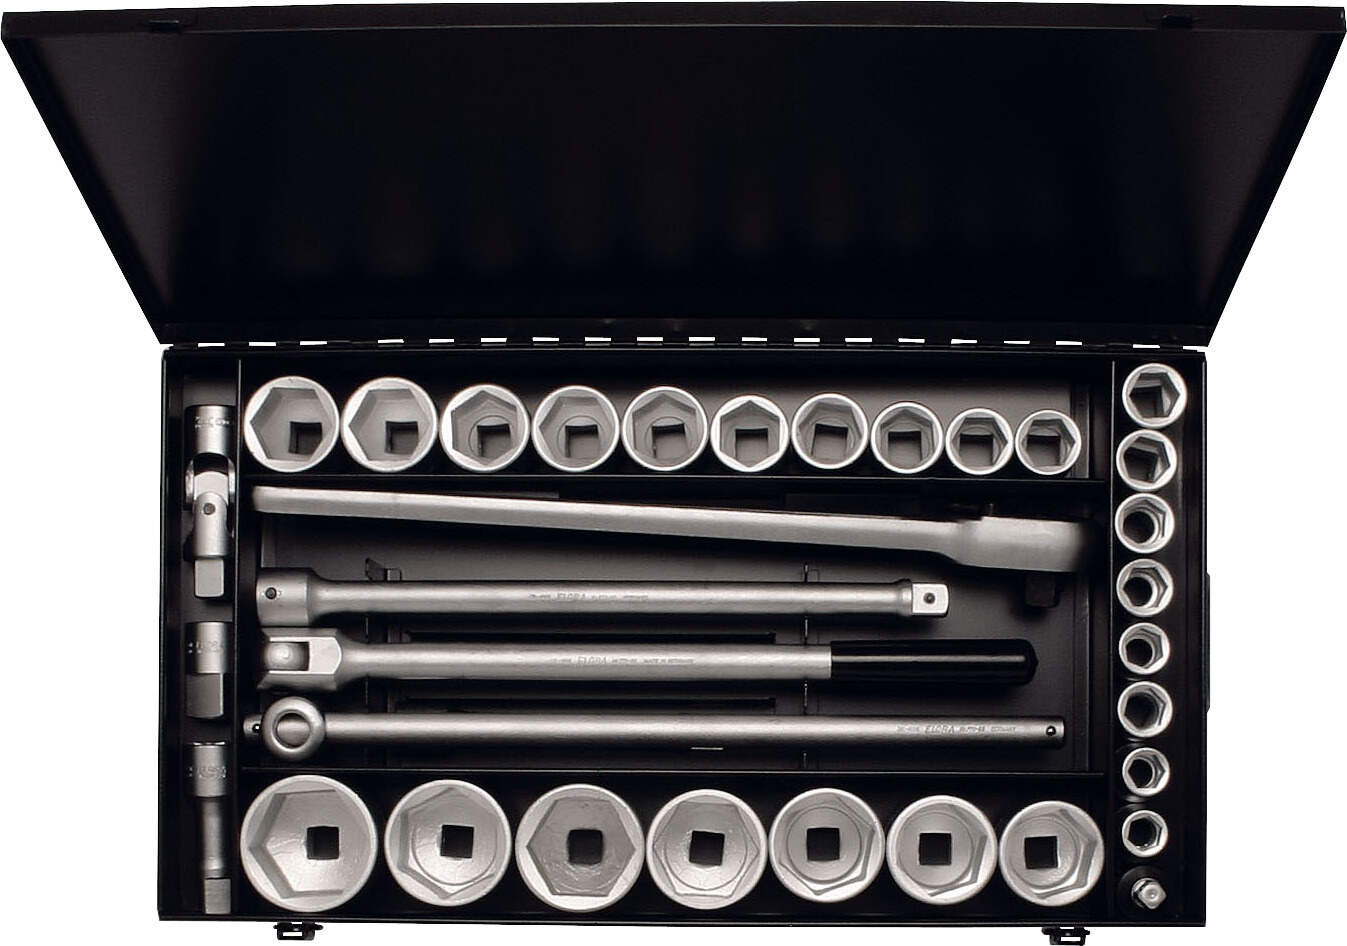 "ELORA Socket Set 3/4"", hexagon, 34-pcs. 18-60 mm, ELORA-771-S24/1 MZ"